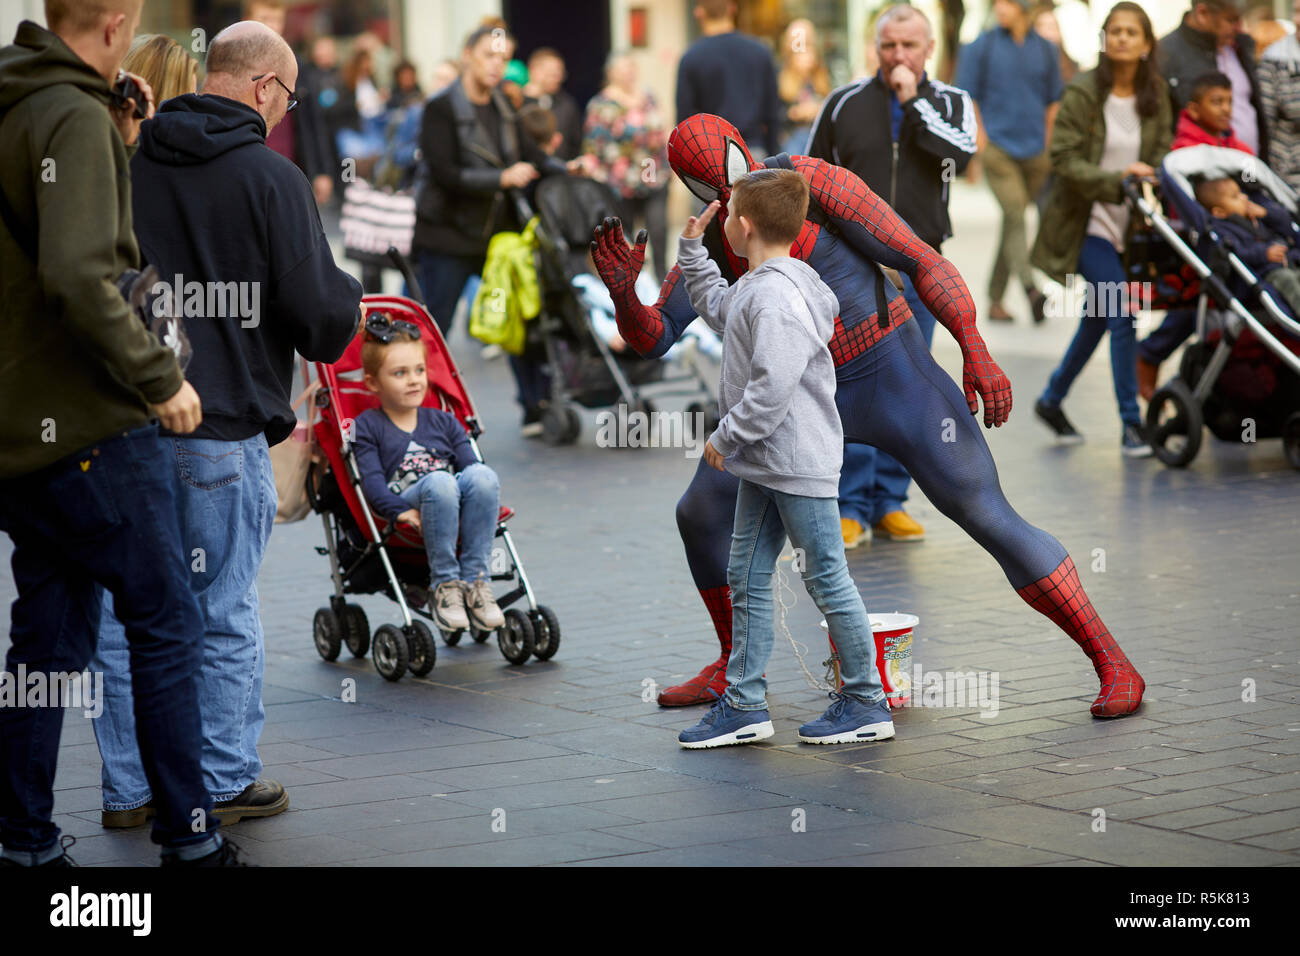 Liverpool city centre a busker dressed in costume as Spiderman - Stock Image